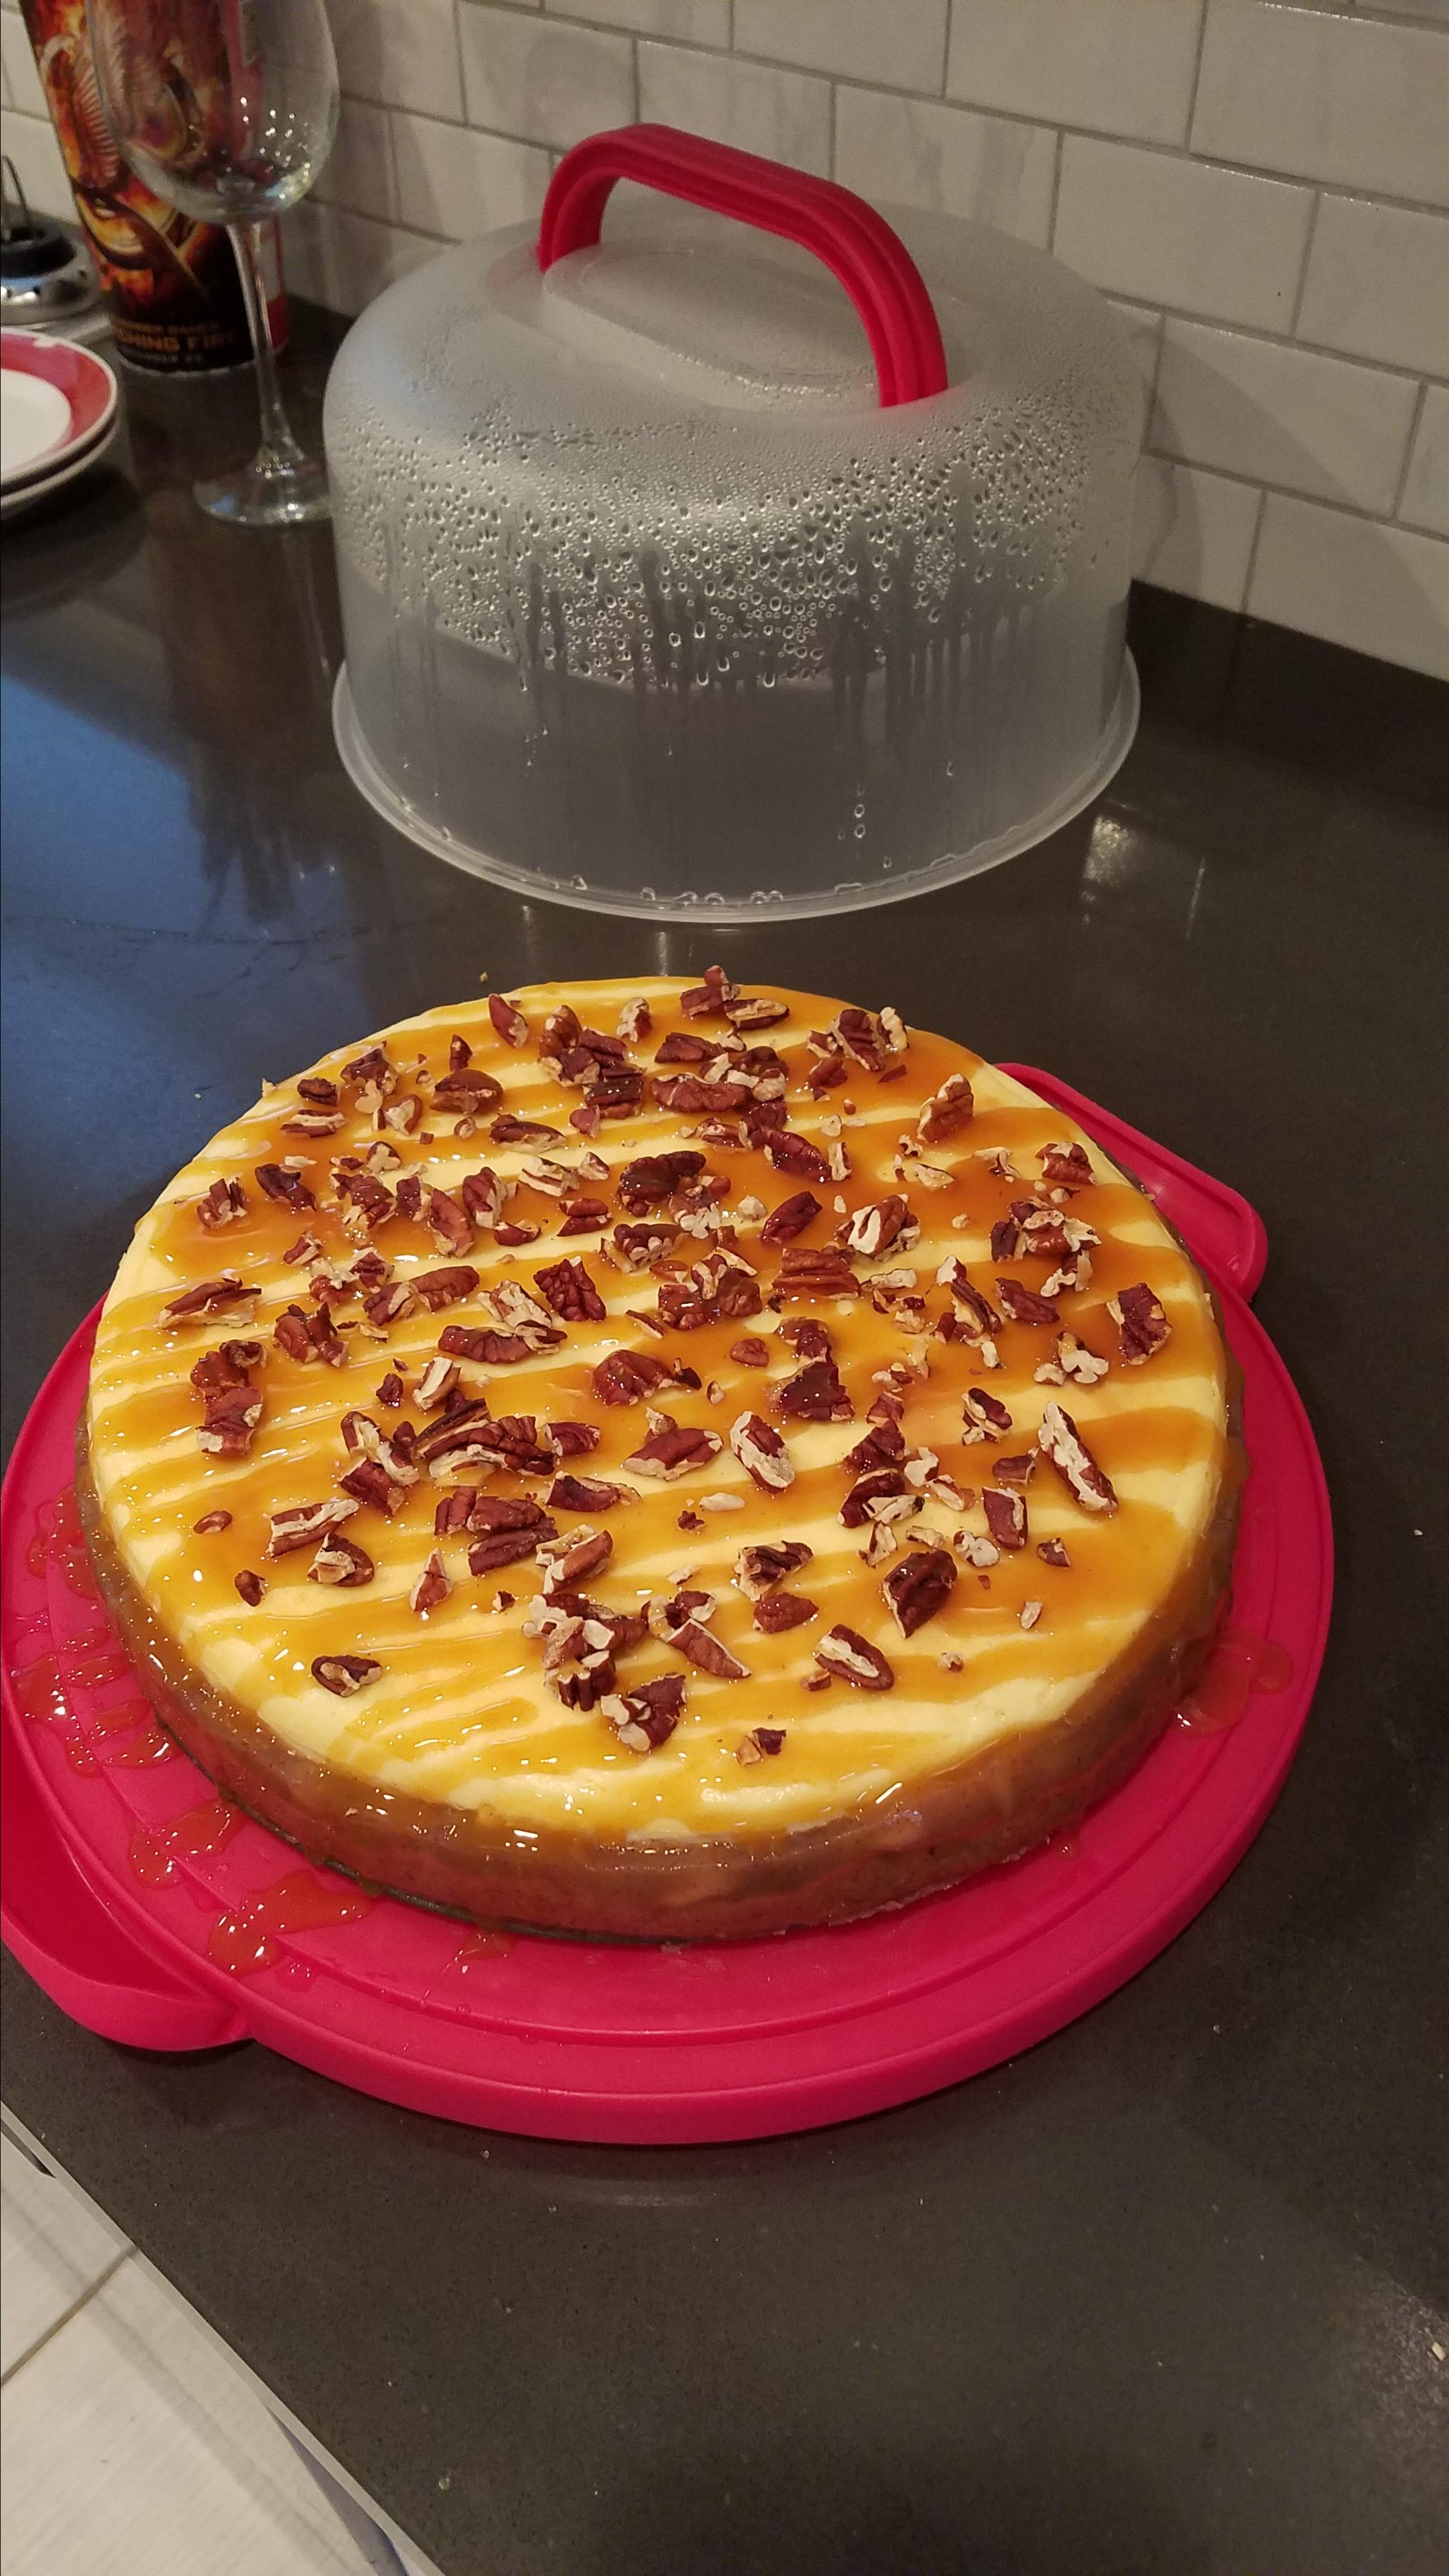 Fresh Caramel Apple Cheesecake Dianne Urey